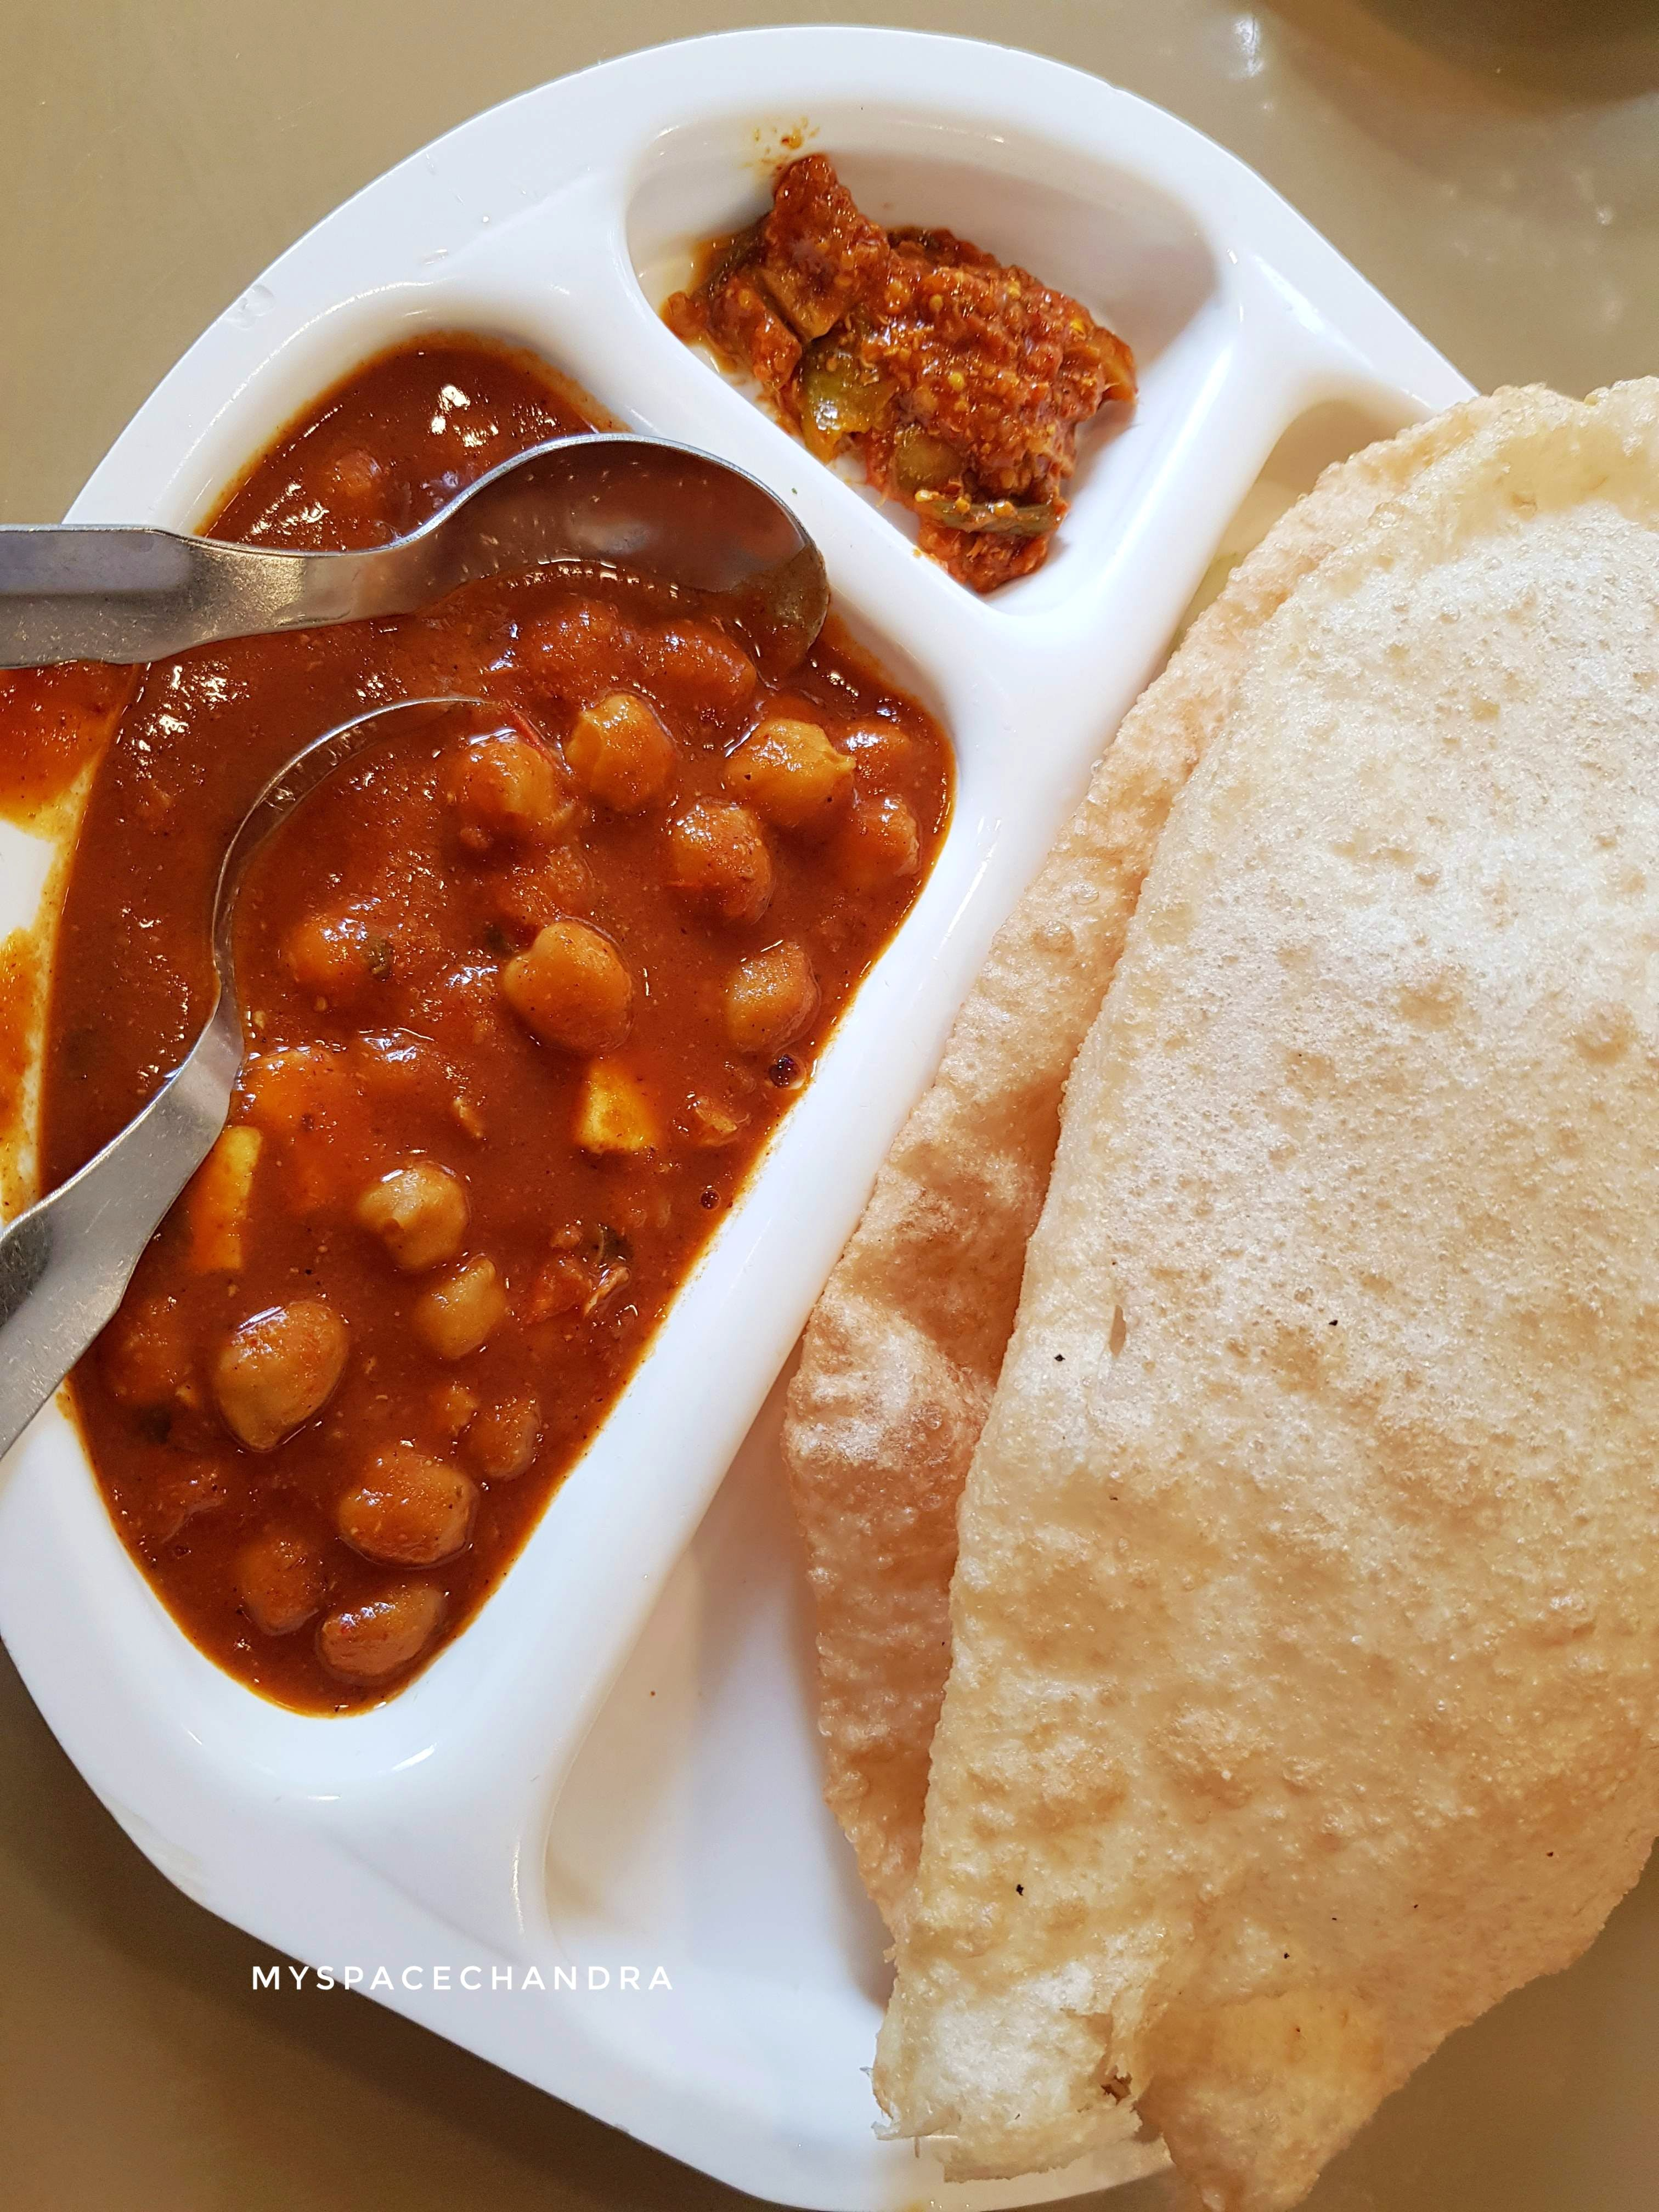 Head To Kota Kachori For Some Amazing North-Indian Fast Food